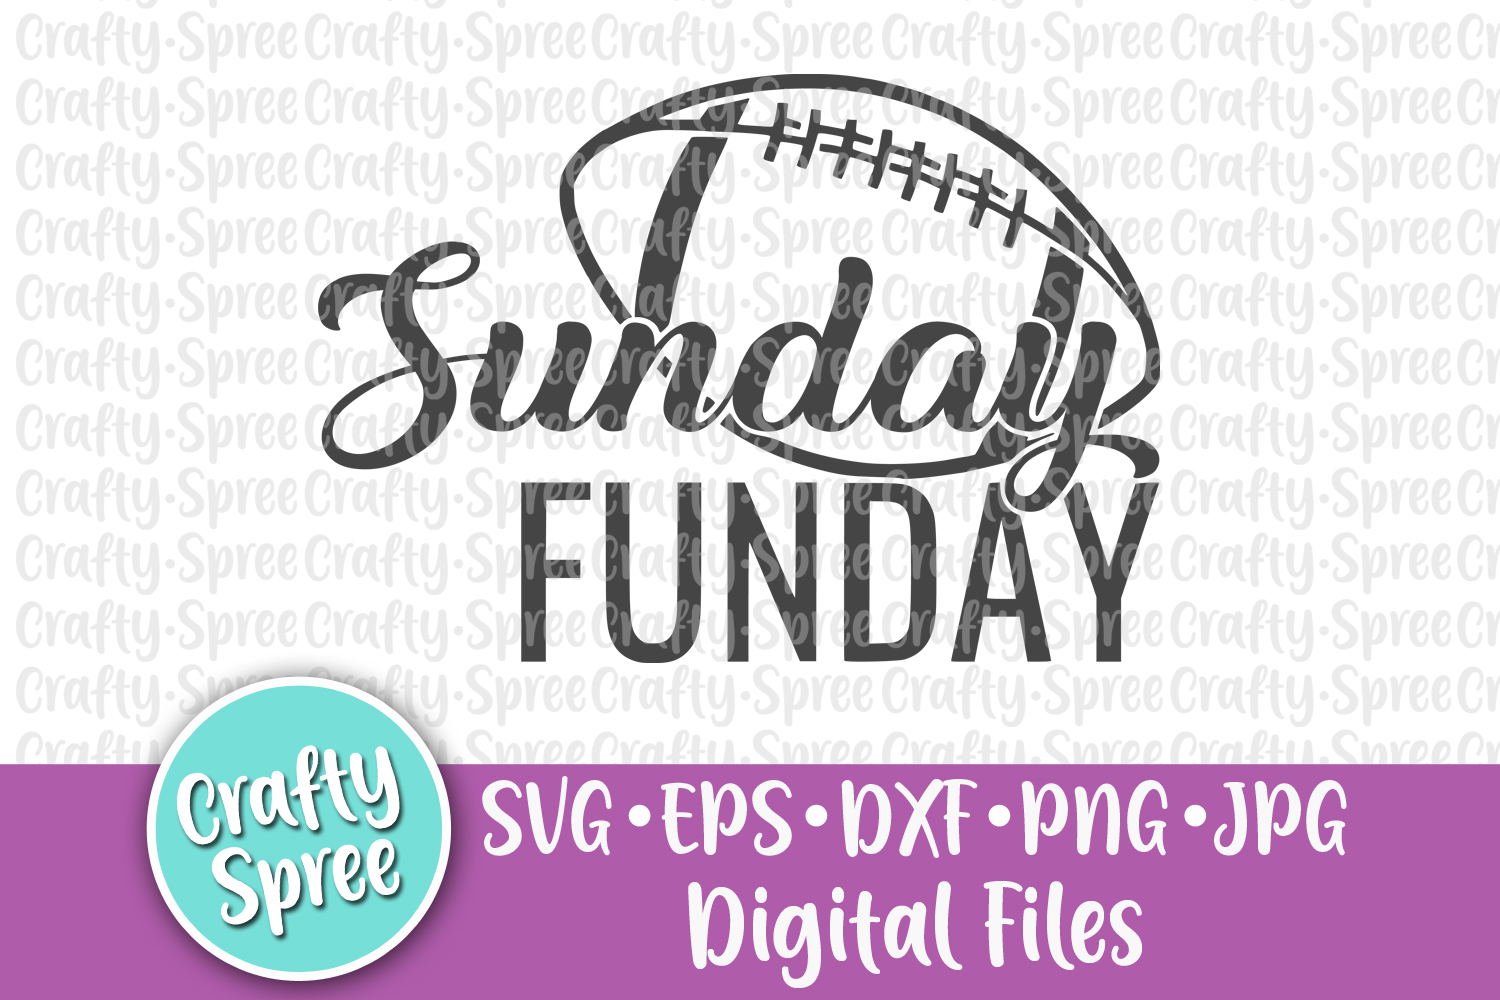 Sunday Funday SVG PNG DXF Cut File example image 2